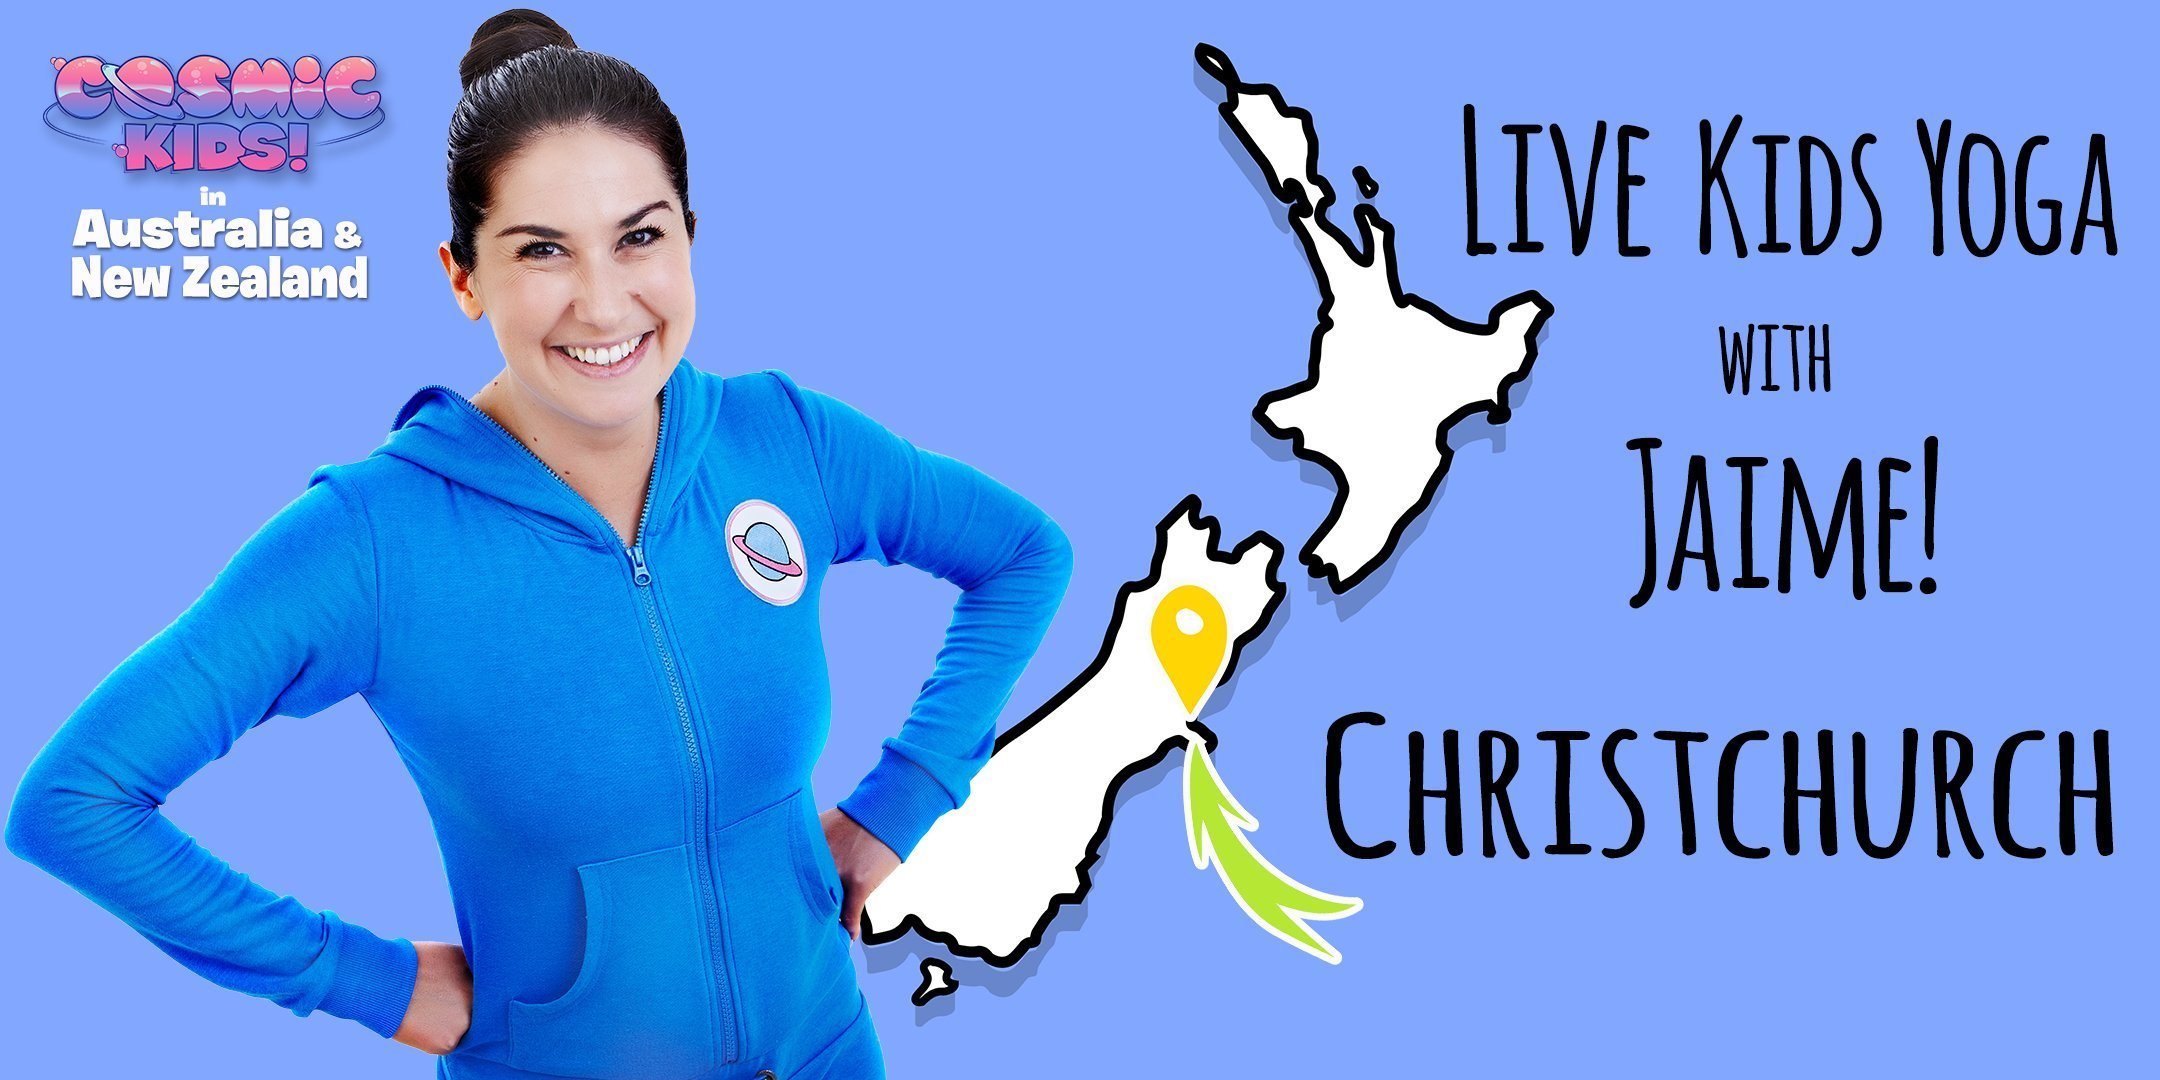 Click to book tickets - Christchurch